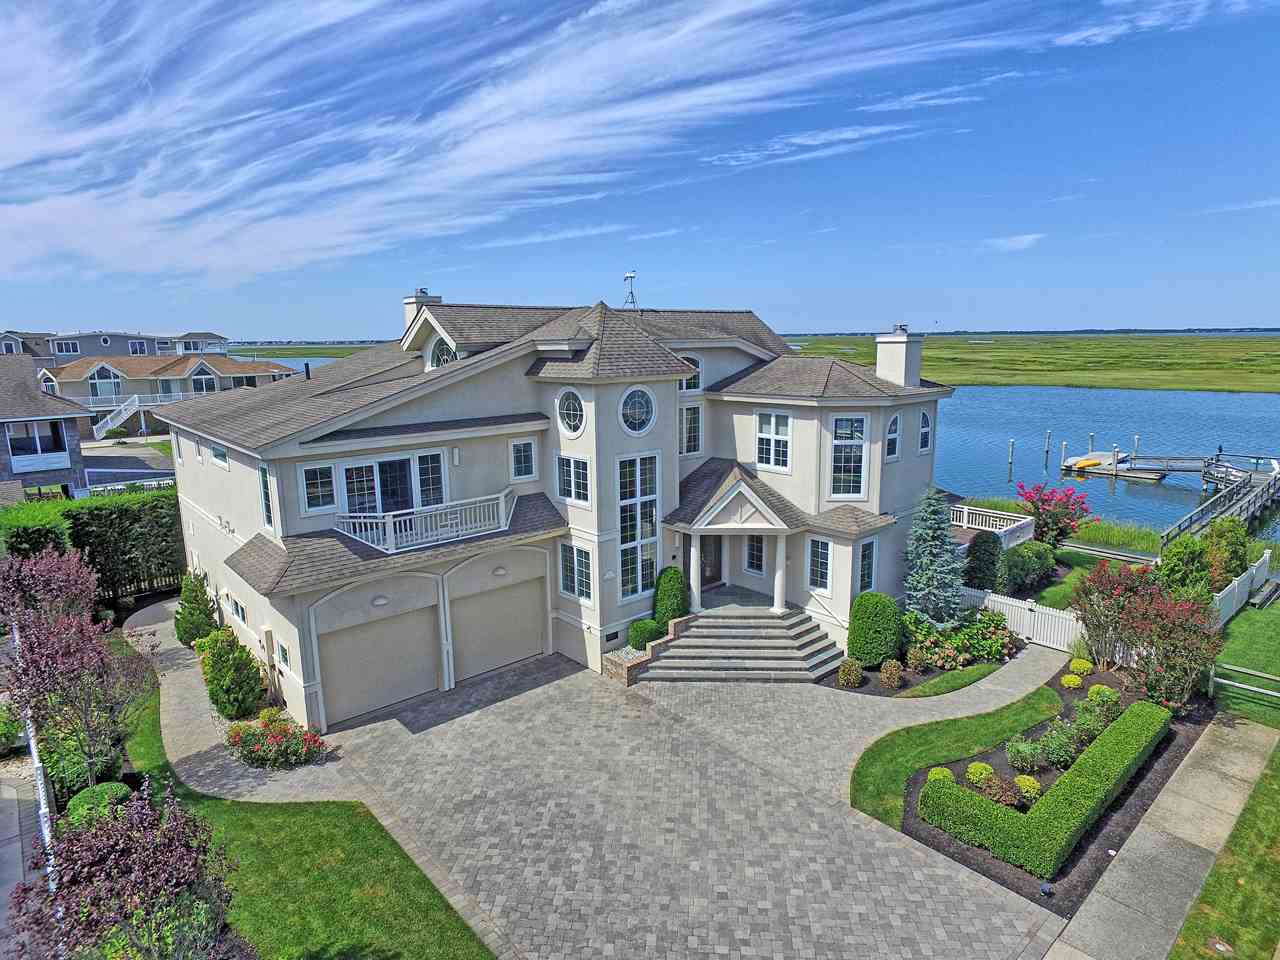 26 and 36 W 32nd Streey, Avalon, NJ 08202